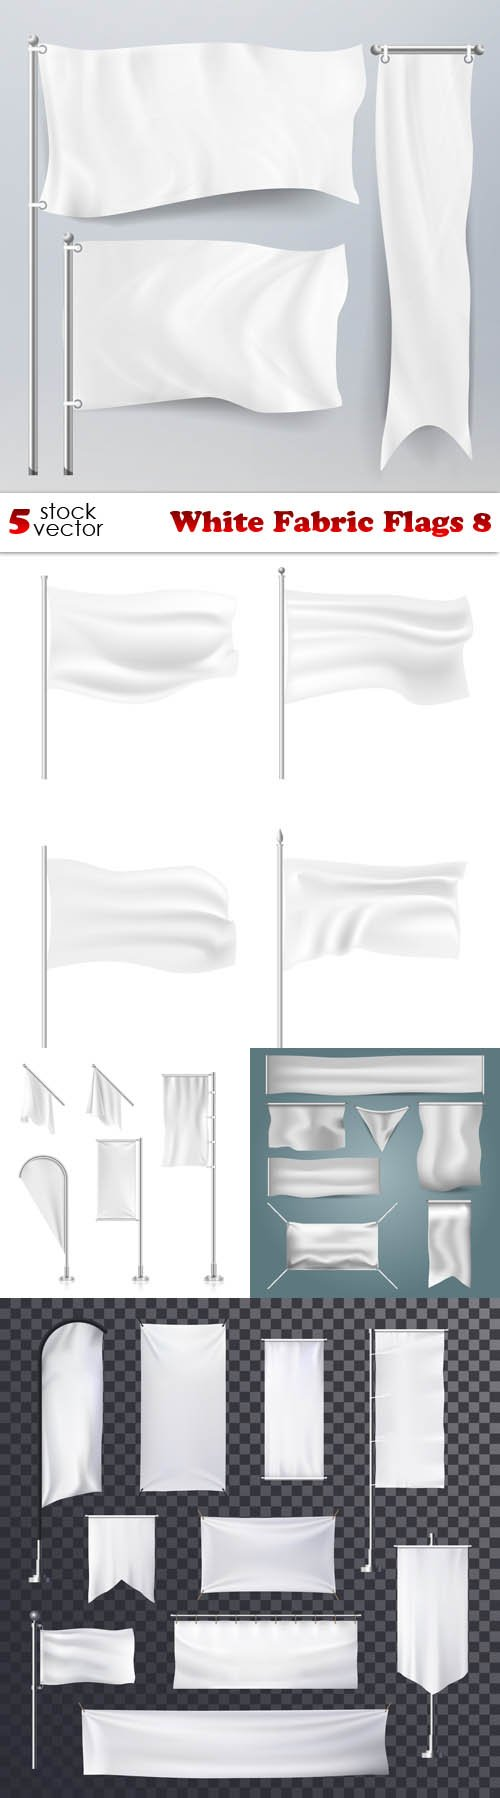 Vectors - White Fabric Flags 8